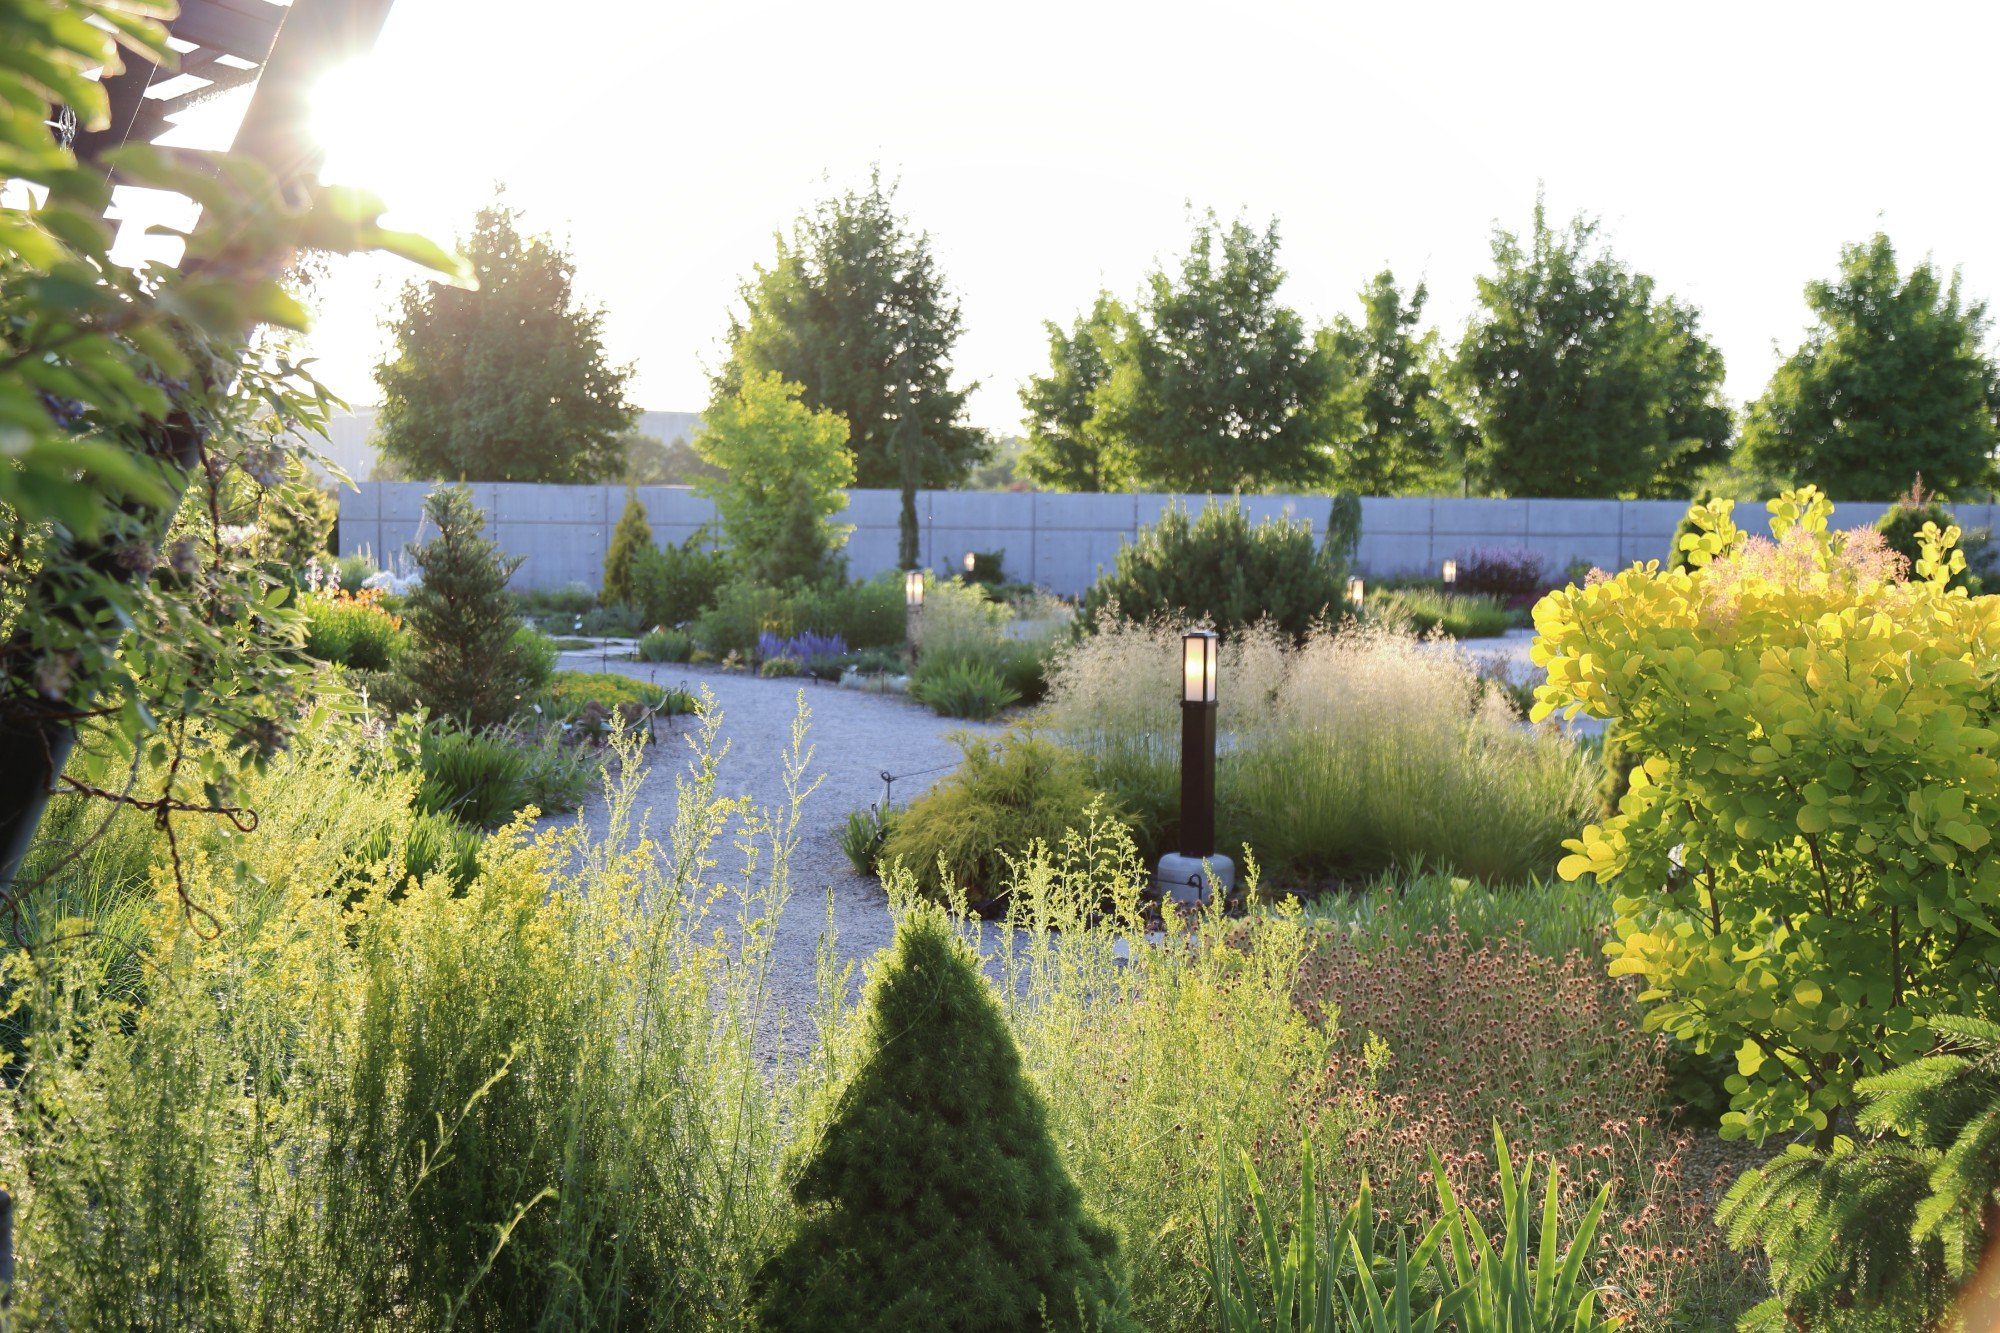 Light illuminates grasses and outlines trees in the Rutledge Conifer and Gravel Garden on June 2. Photo by Kelly Norris.